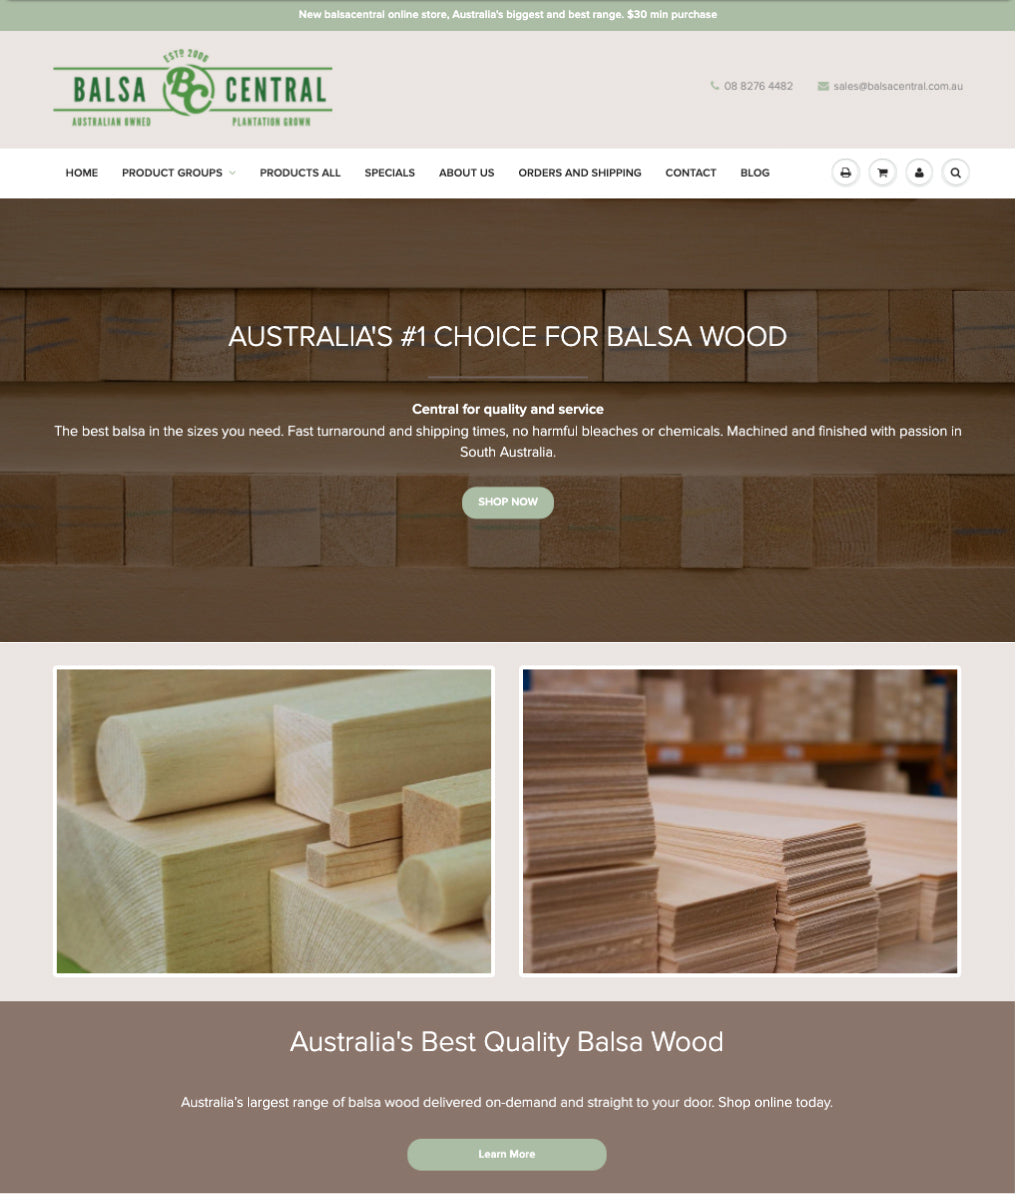 Balsa central's webpage showing samples of their balsa wood and two ctas to shop now or learn more